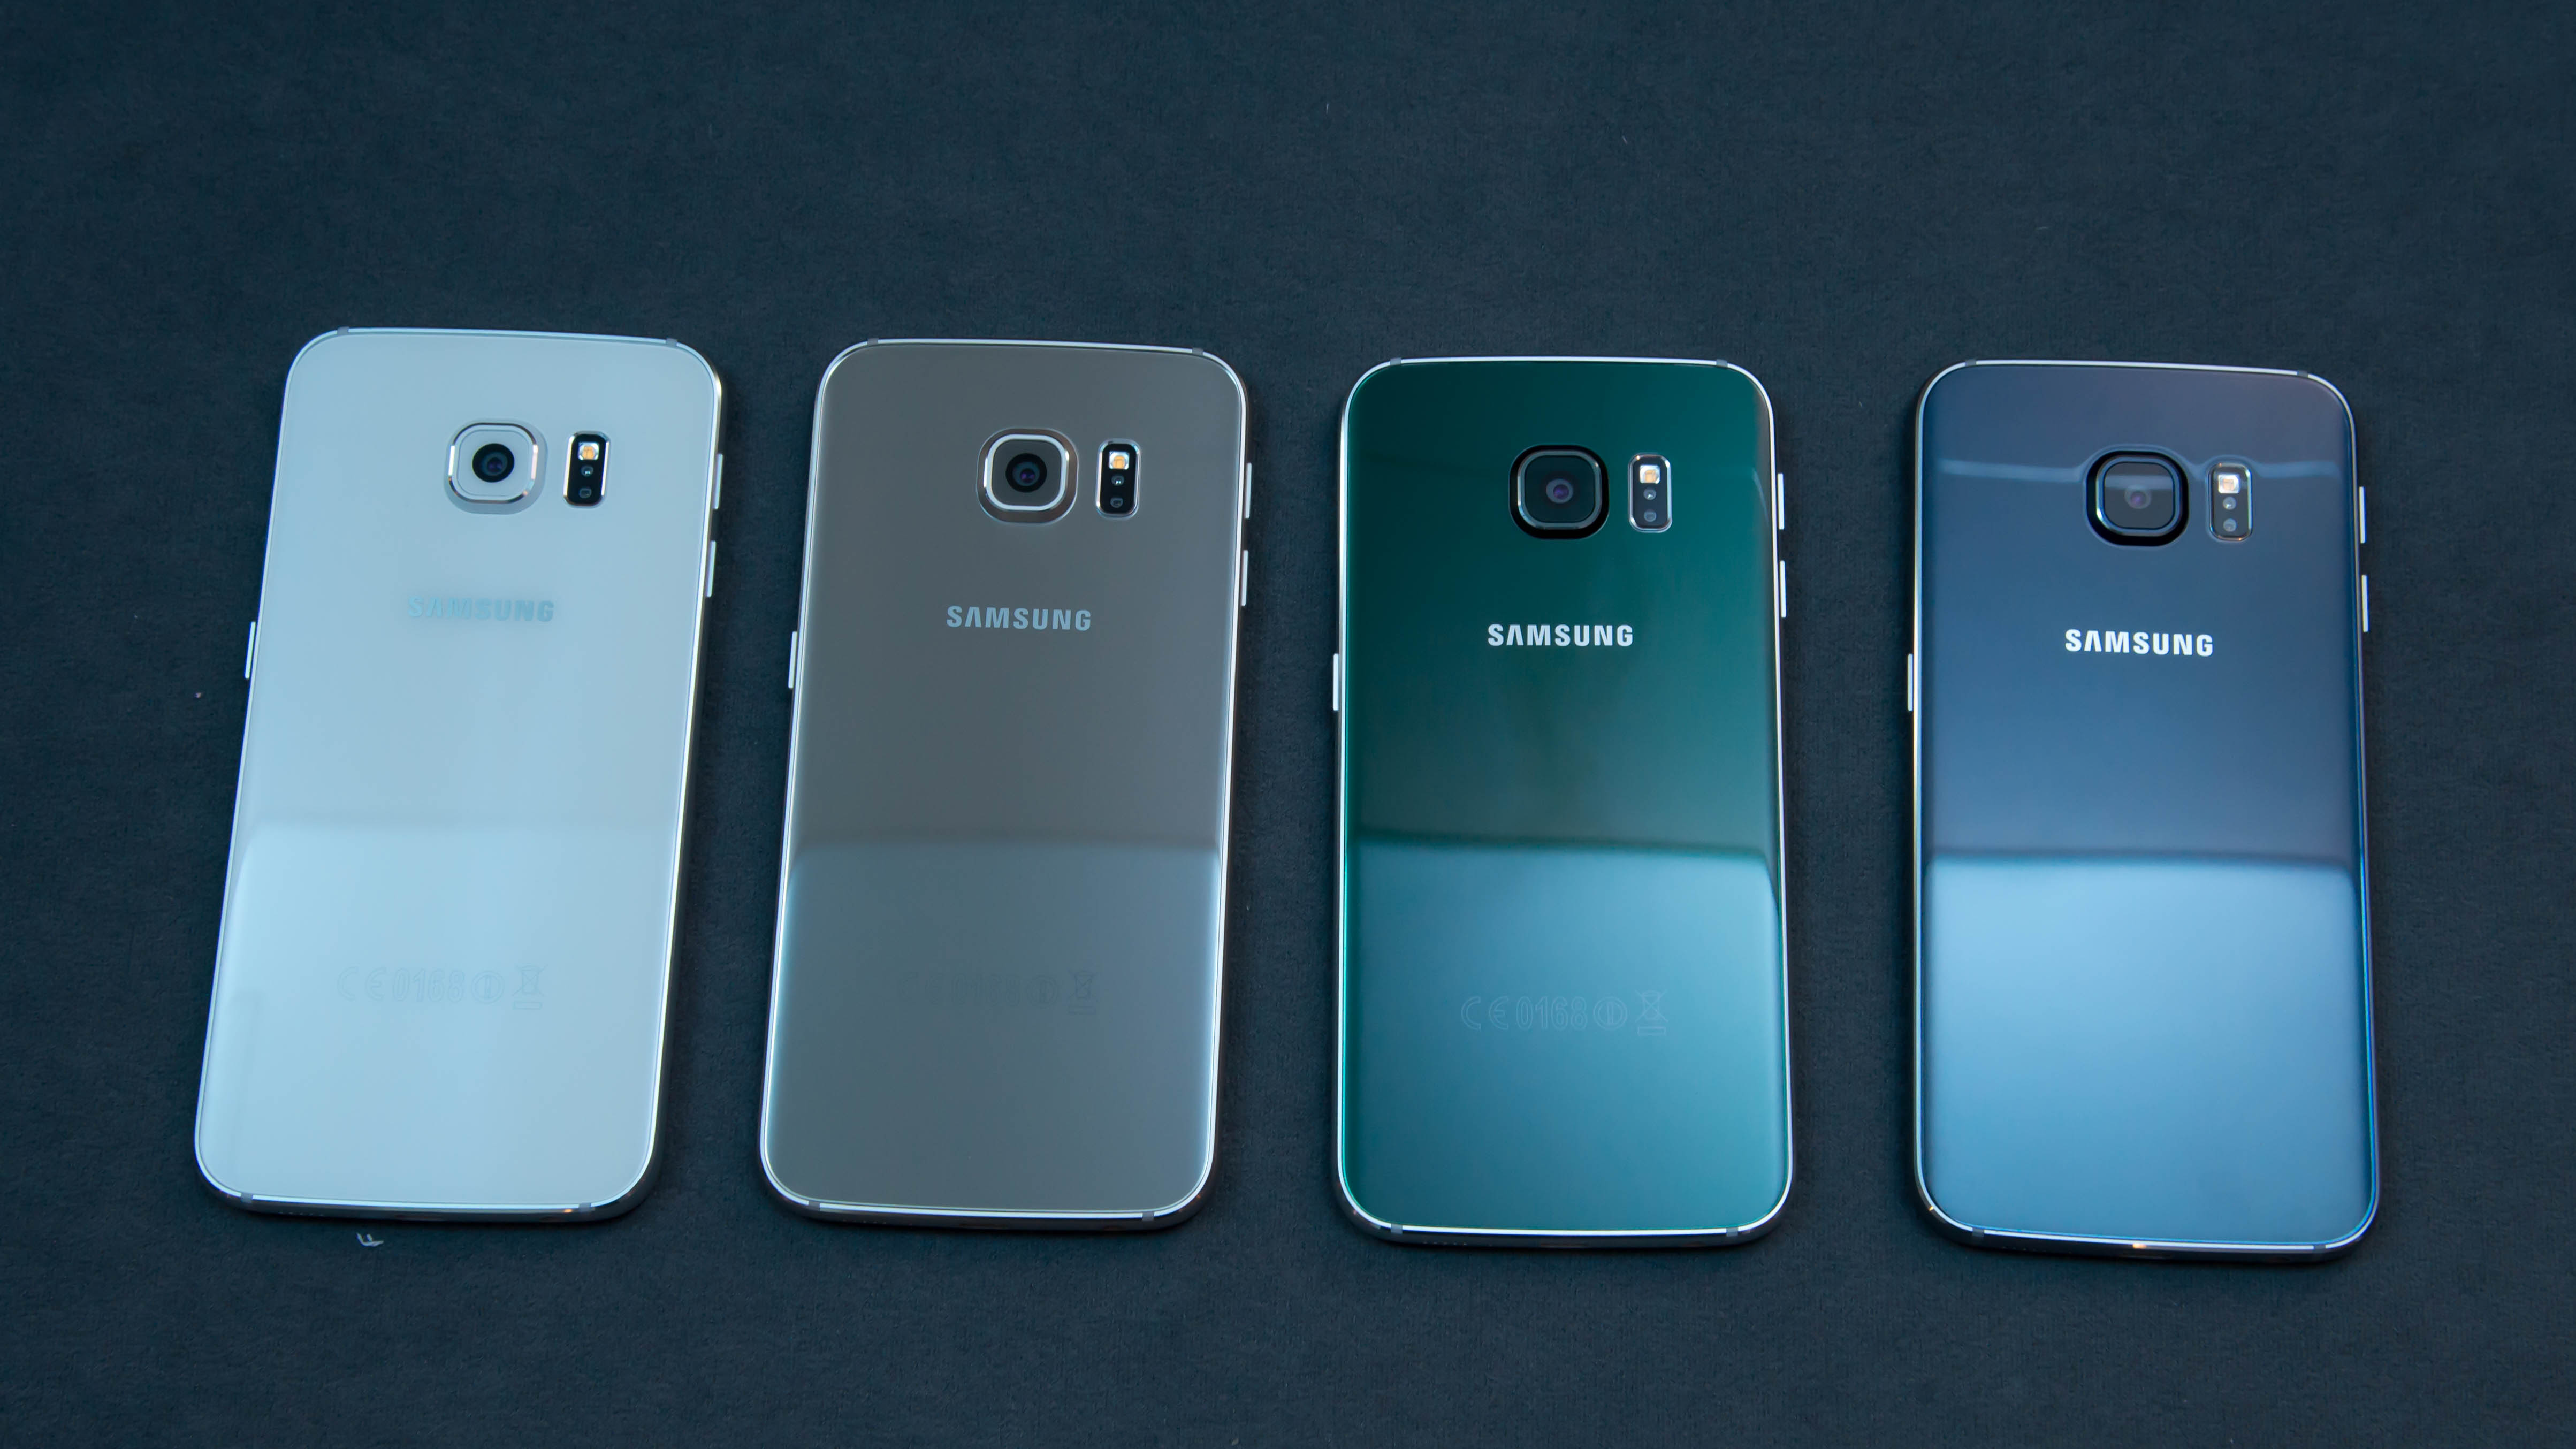 Not All Galaxy S6 Cameras Are The Same, But Samsung Isn't